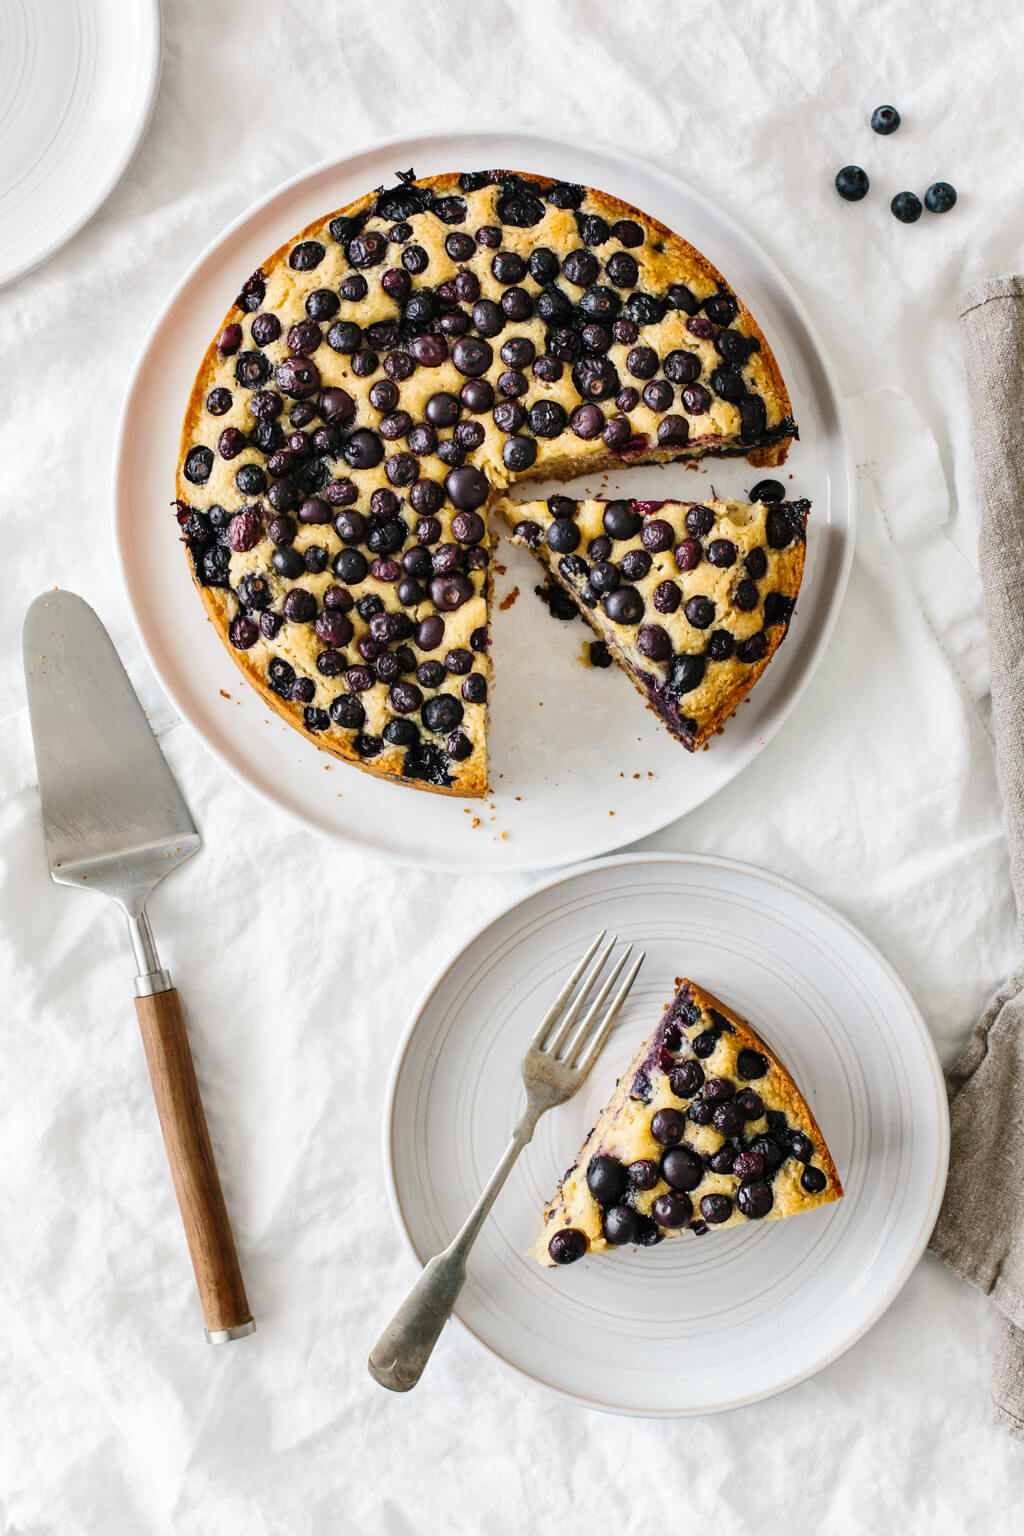 A lemon cake topped with blueberries on a table. A slice of the cake is taken from the cake and on a plate next to it.